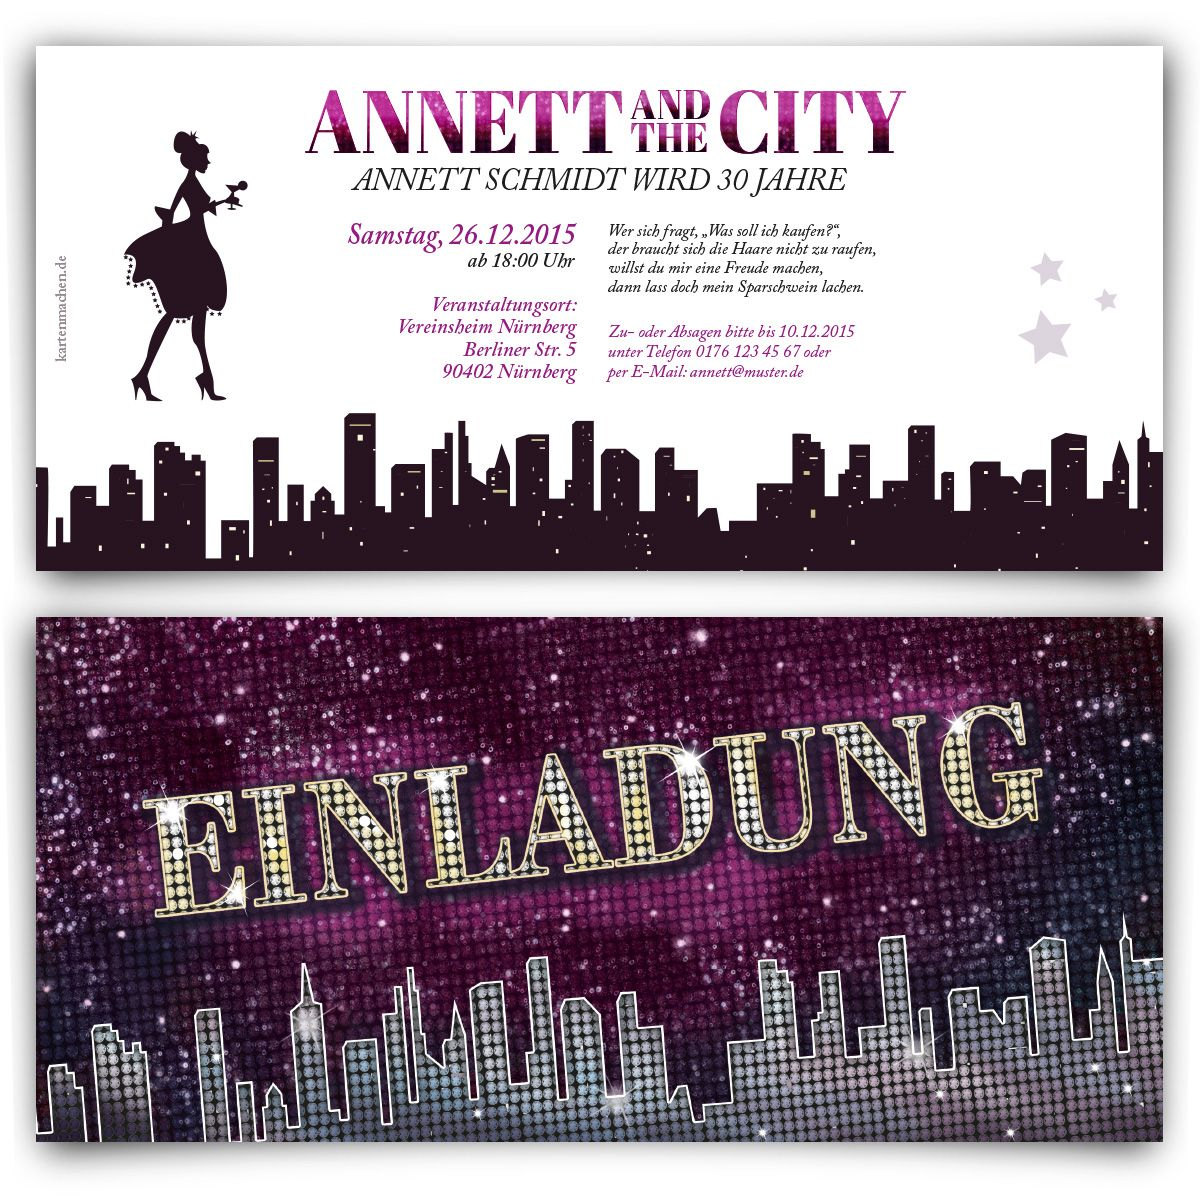 superior party einladung/einladungen party #10: Einladungskarten - Ladies and the City #einladung #einladungskarten #party  #geburtstag #girls